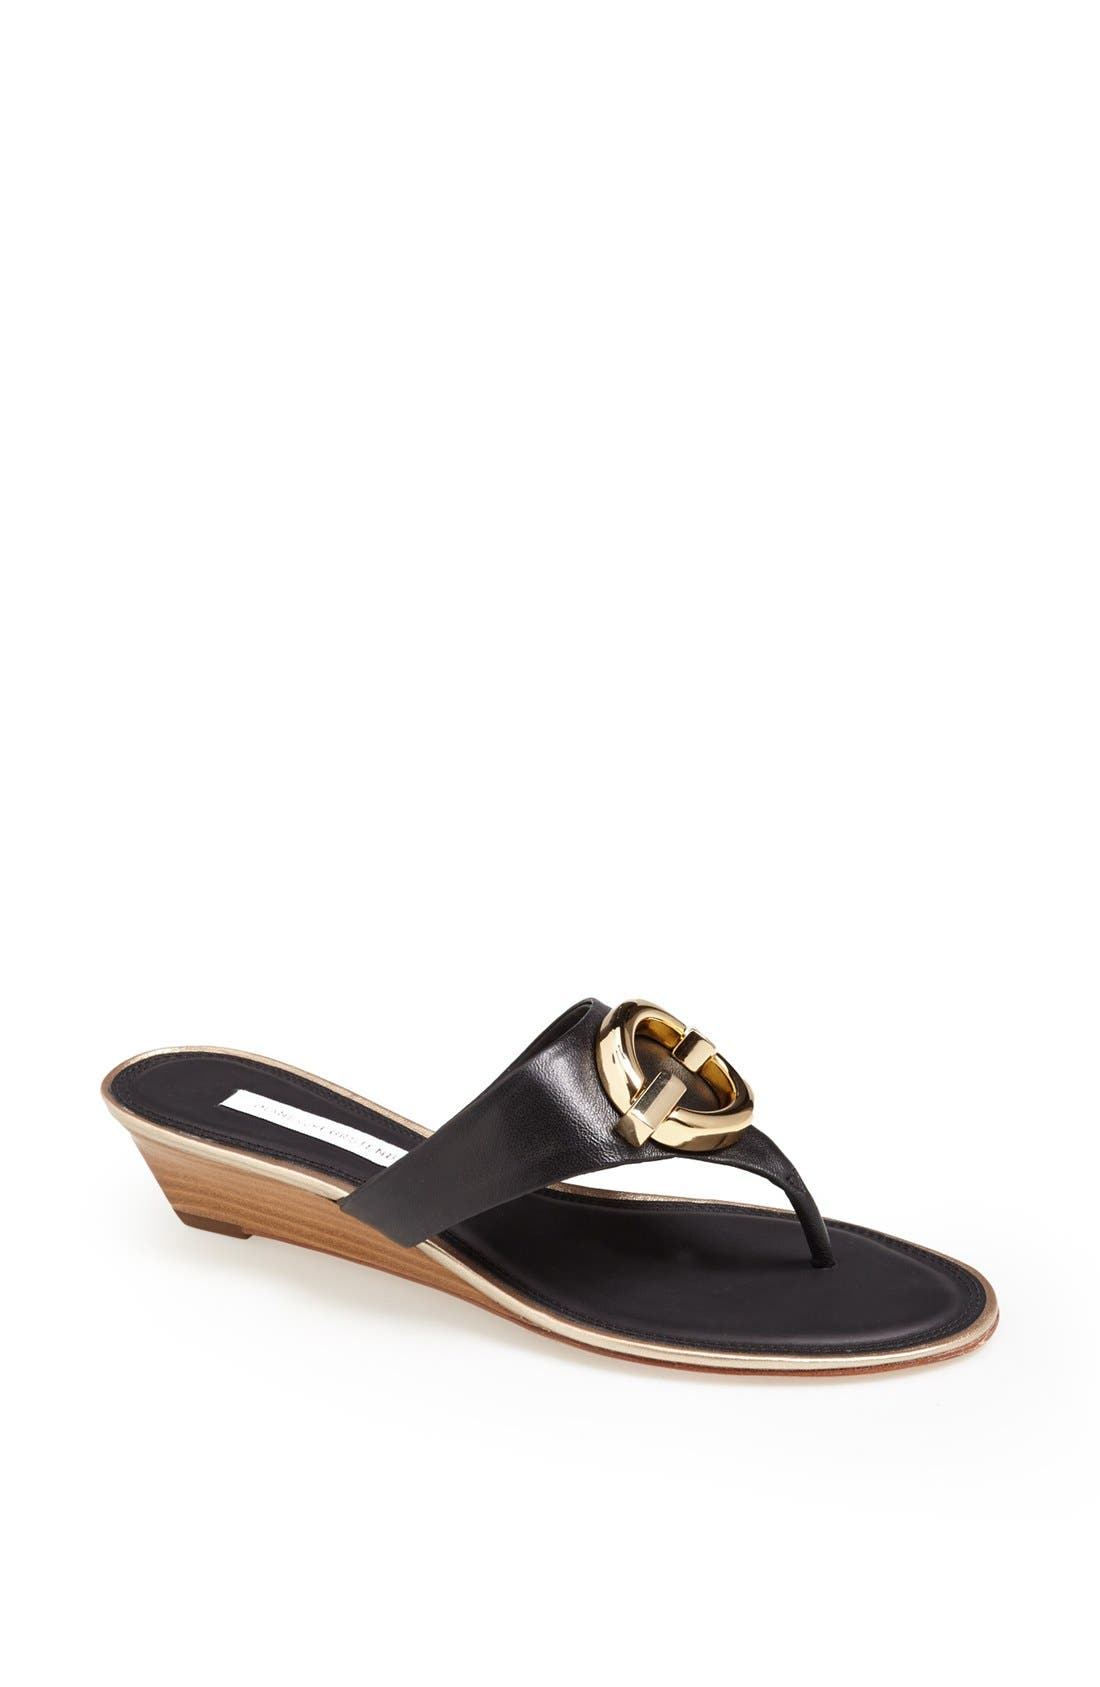 Alternate Image 1 Selected - Diane von Furstenberg 'Tiles' Leather Sandal